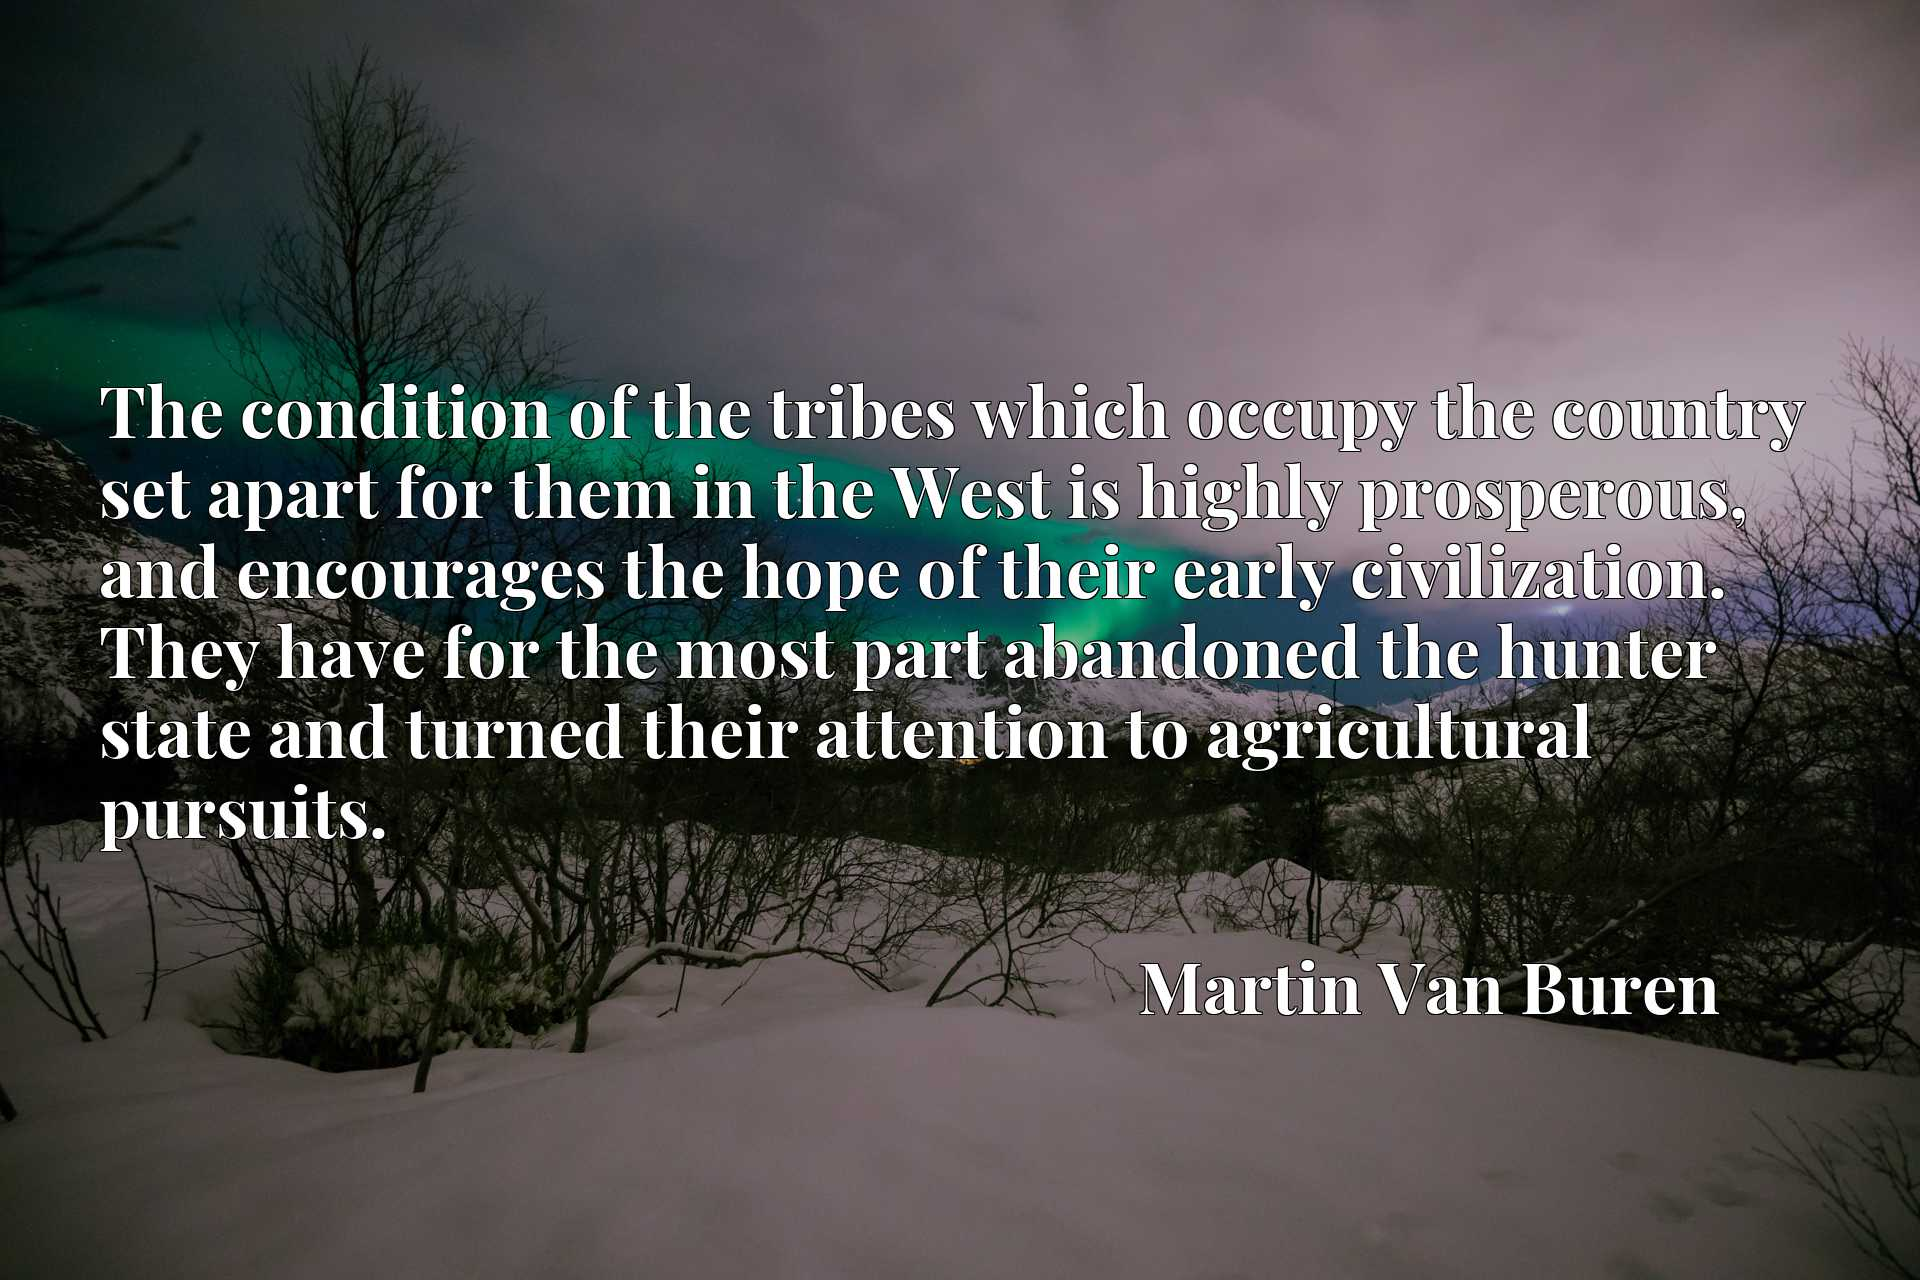 The condition of the tribes which occupy the country set apart for them in the West is highly prosperous, and encourages the hope of their early civilization. They have for the most part abandoned the hunter state and turned their attention to agricultural pursuits.